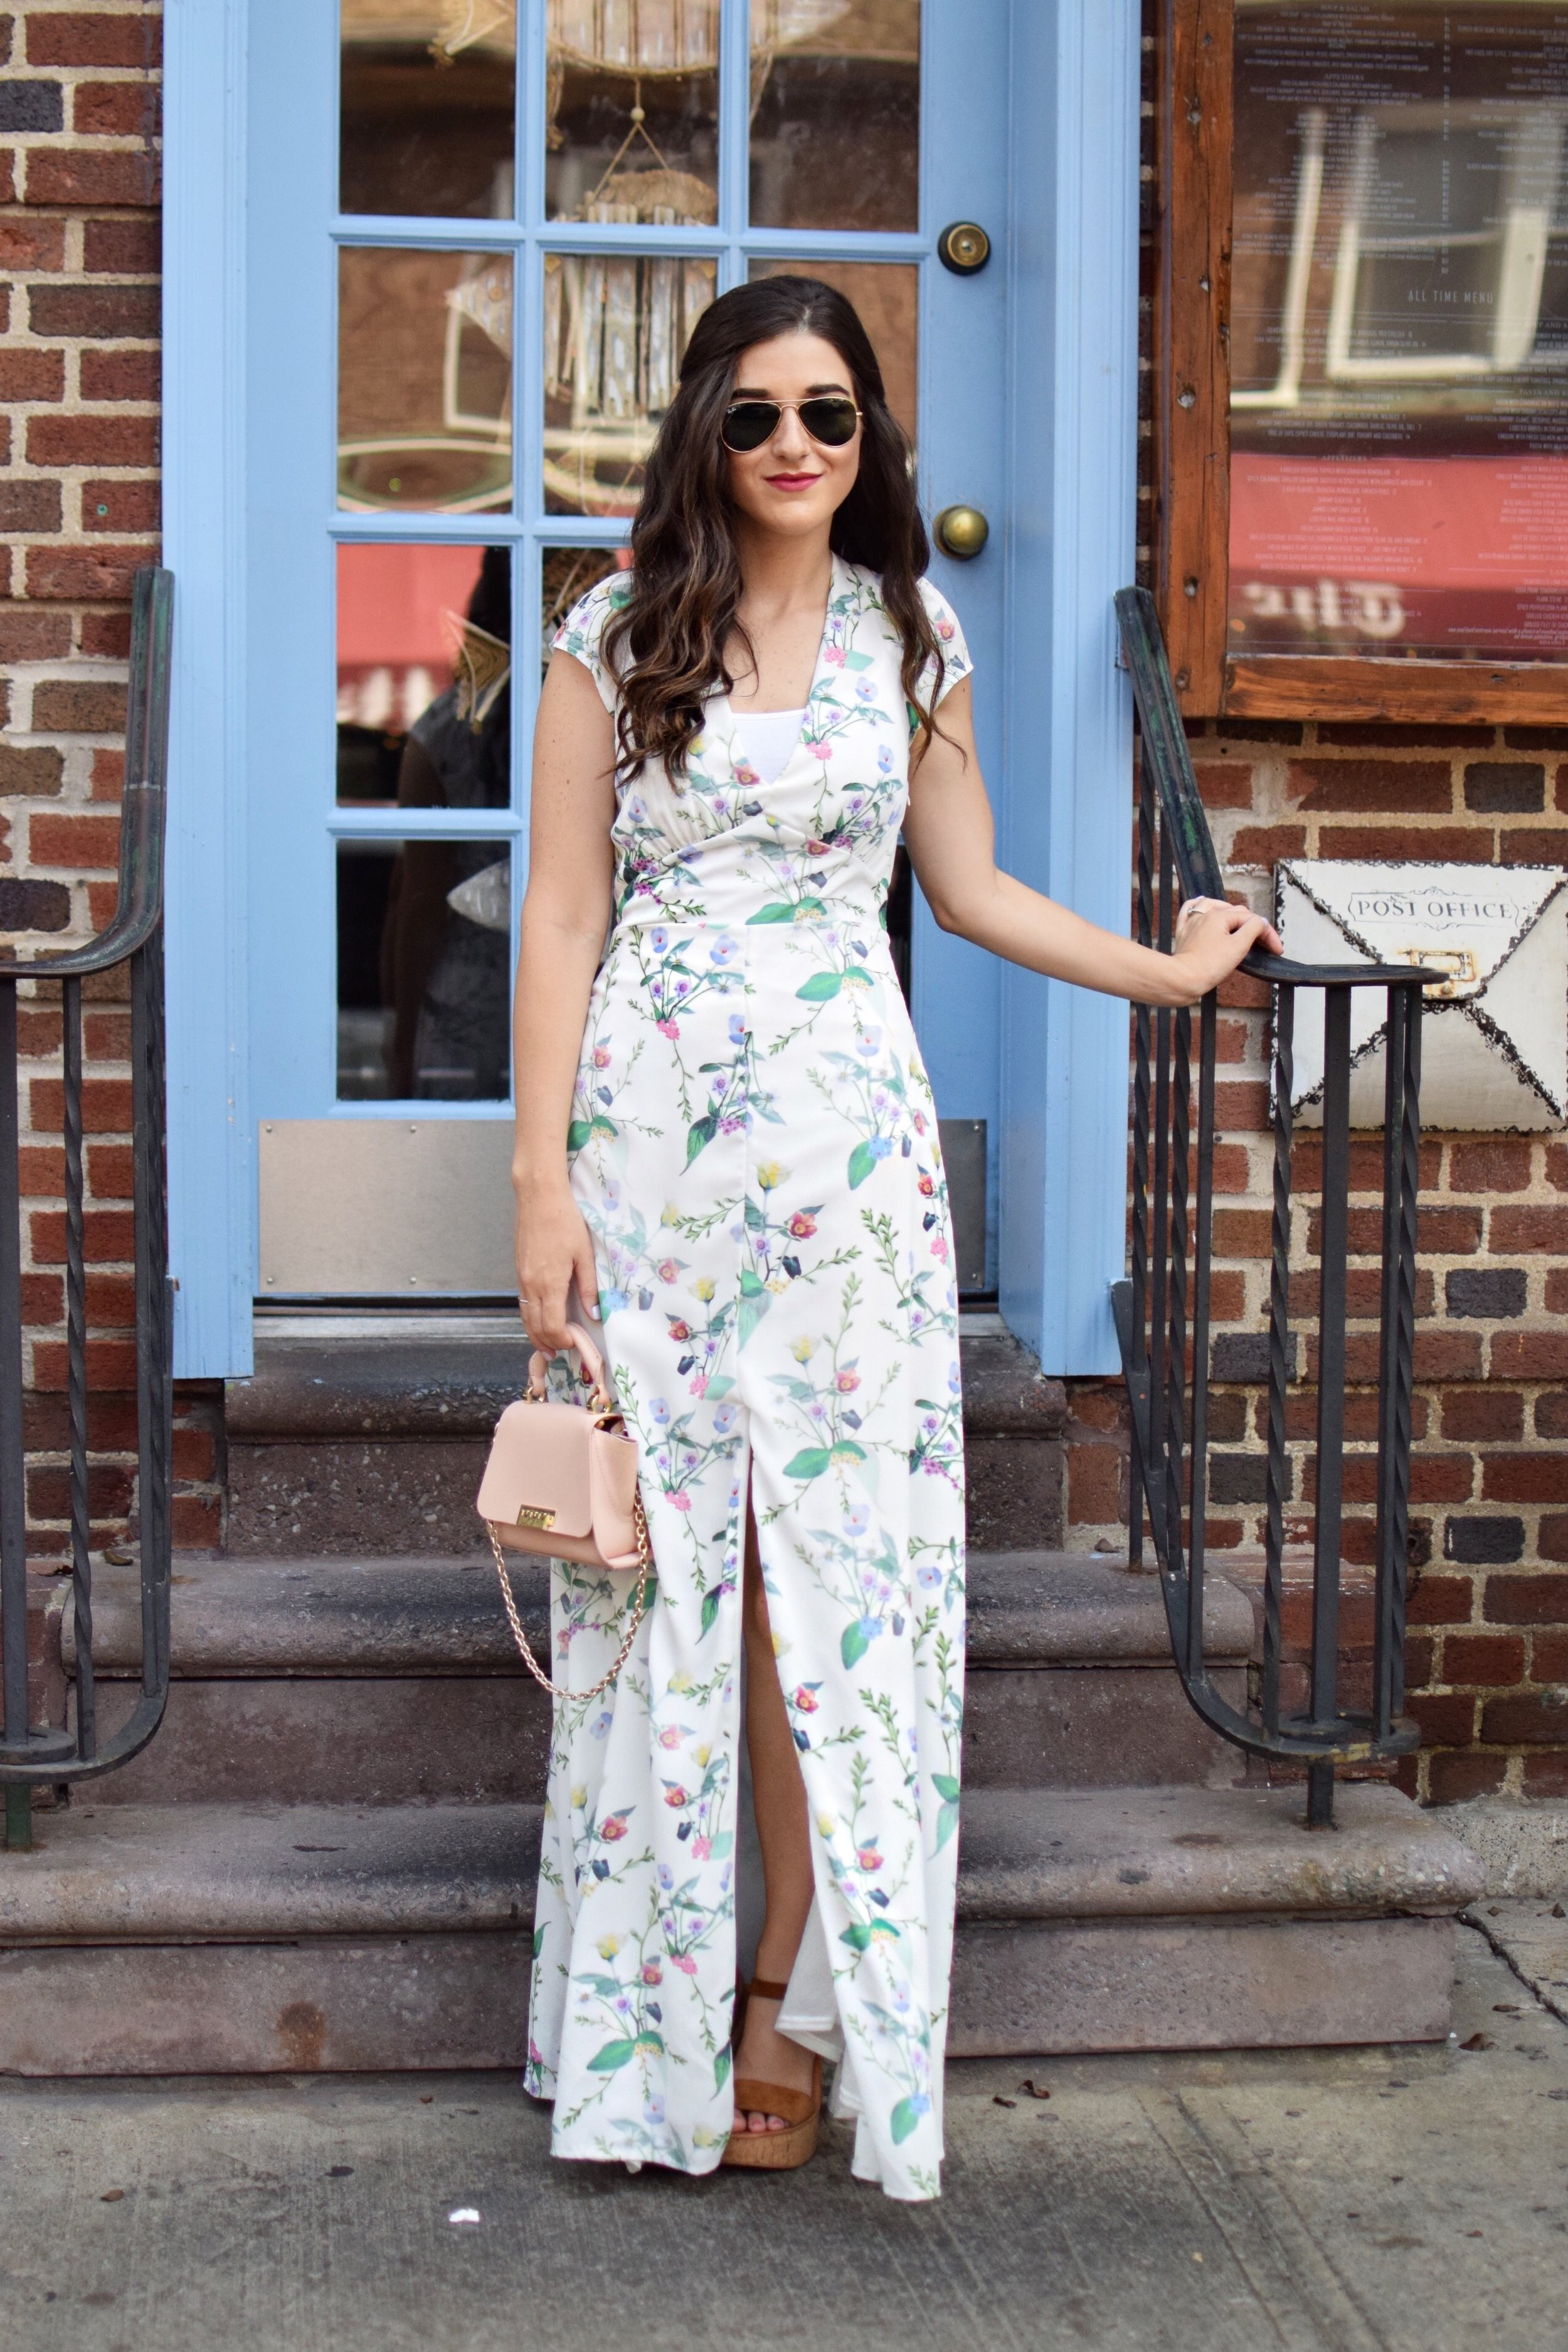 Floral Maxi Dress Trescool Esther Santer Fashion Blog NYC Street Style Blogger Outfit OOTD Trendy Summer Look Idea Inspiration Inspo Girl Women Zac Posen Mini Pink Bag Purse Sunglasses RayBan Aviators  Cork Wedges Dolce Vita Photoshoot New York City.JPG